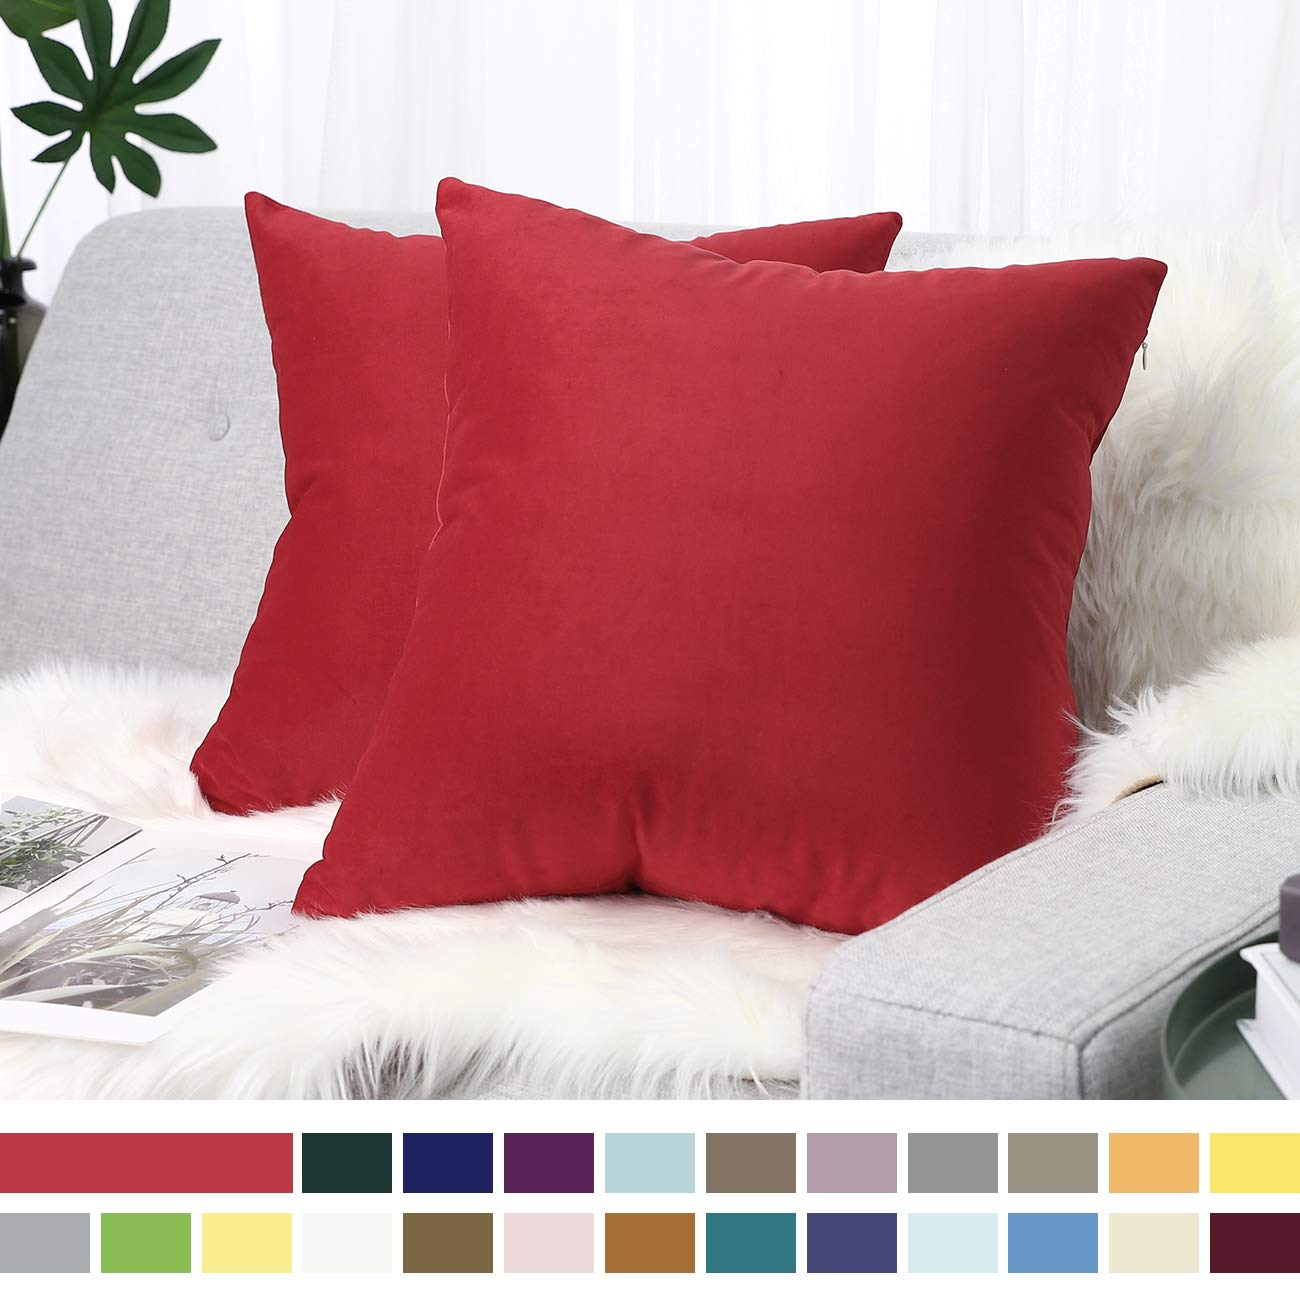 """Lewondr Velvet Soft Throw Pillow Cover, 2 Pack Modern Solid Color Square Decorative Throw Pillow Case Cushion Covers for Car Sofa Bed Couch Home Christmas Decor, 18""""x18""""(45x45cm), Red"""